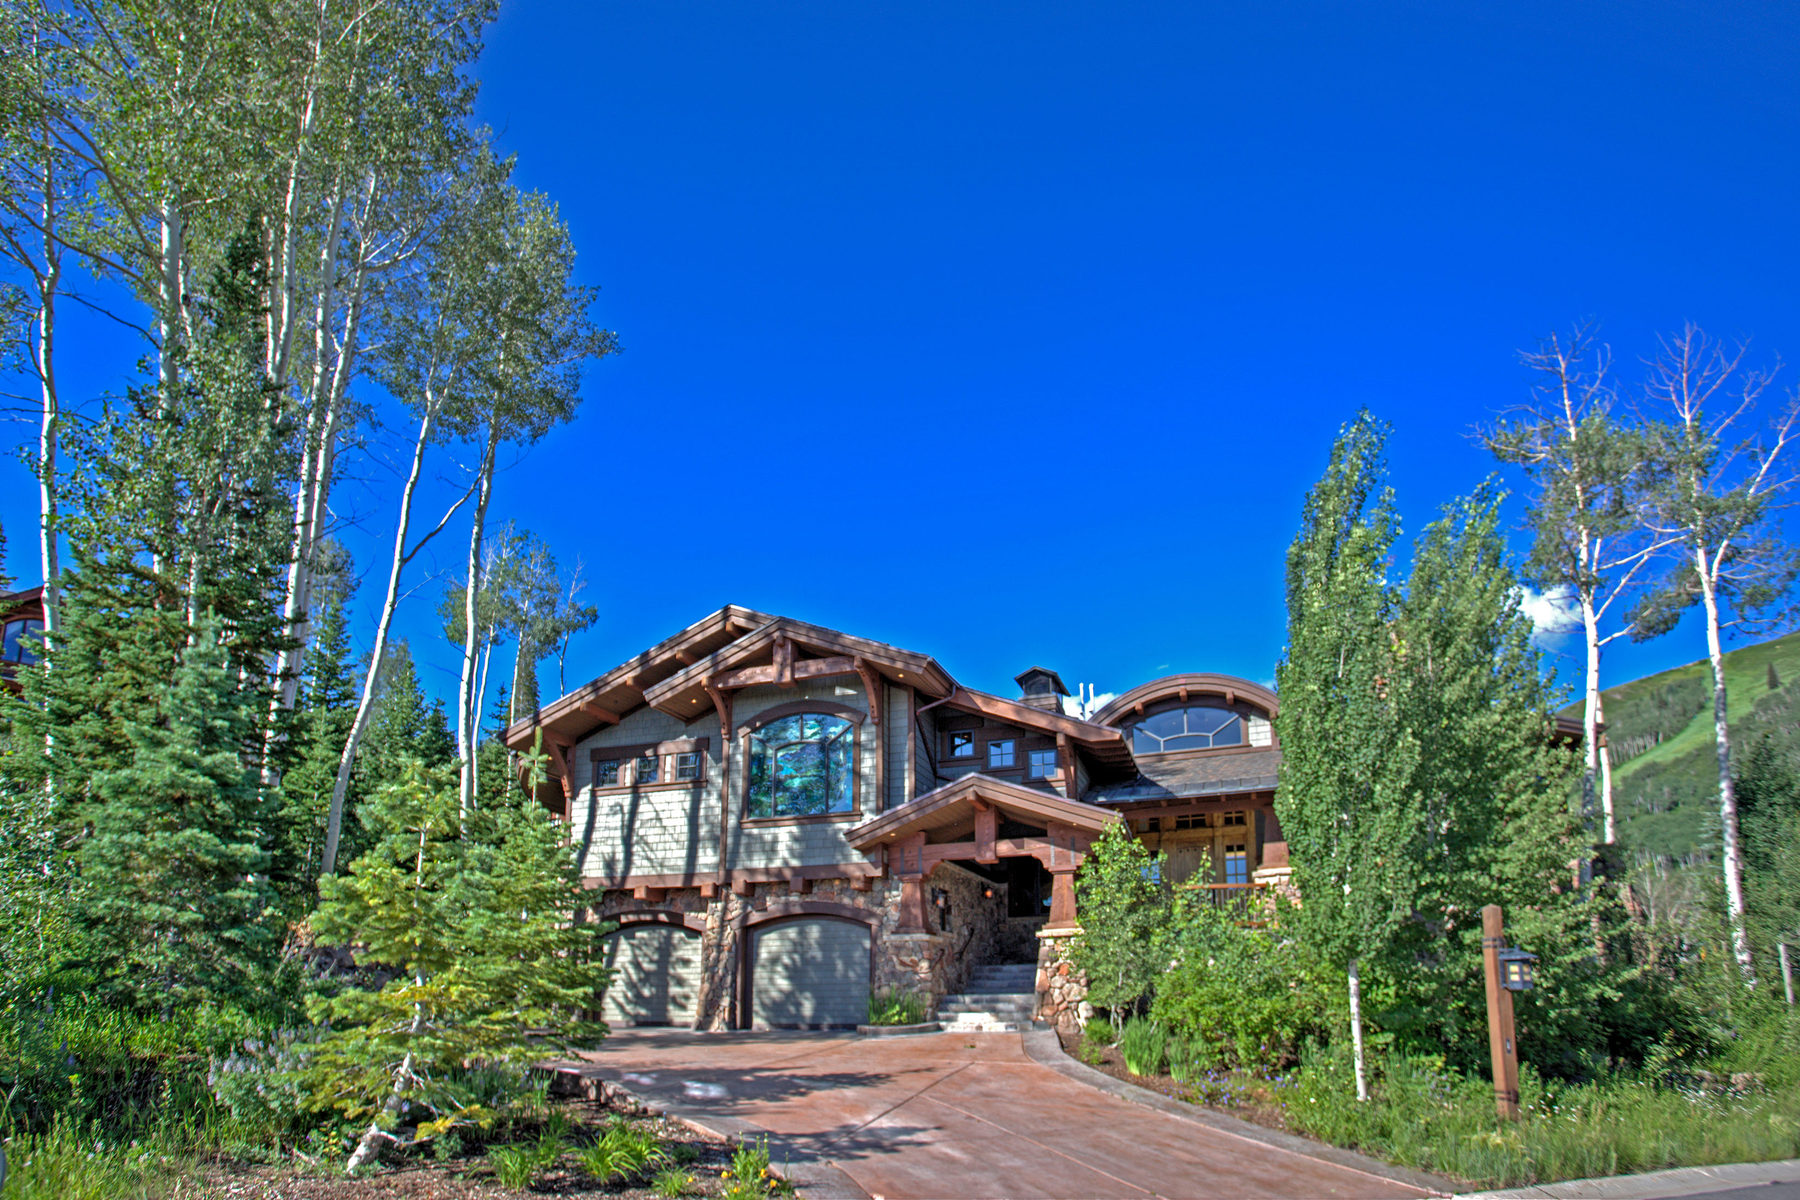 一戸建て のために 売買 アット Rare Opportunity to Own in Northside Village 1 Northside Court Lot 2 Park City, ユタ 84060 アメリカ合衆国